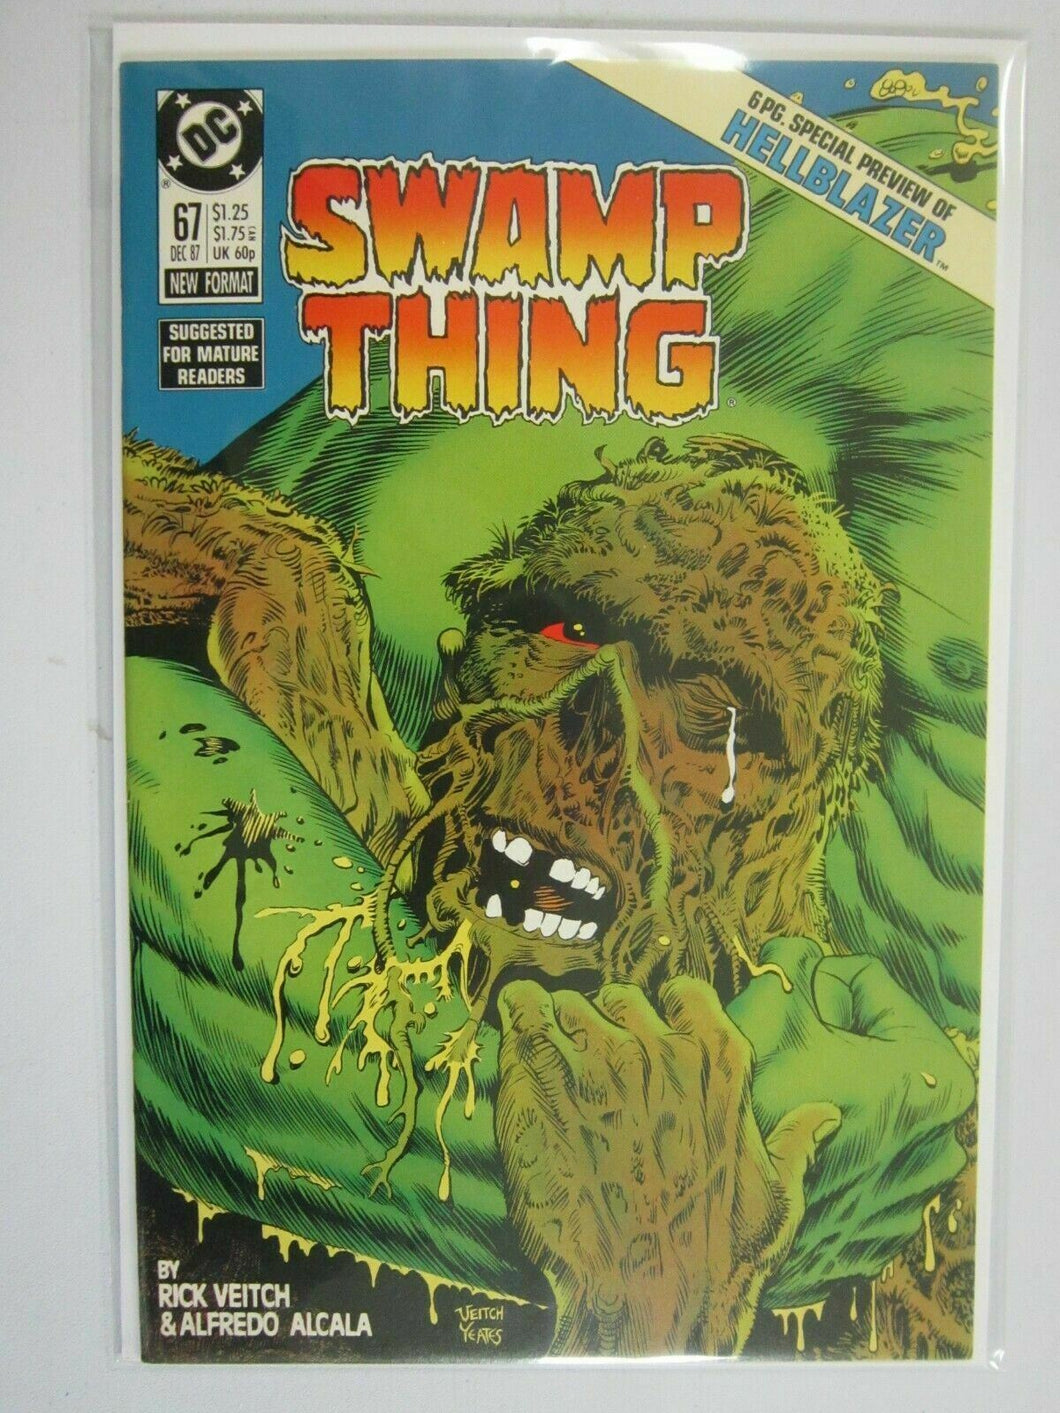 Swamp Thing #67 with Hellblazer preview 8.5 VF+ (1987 Vertigo)